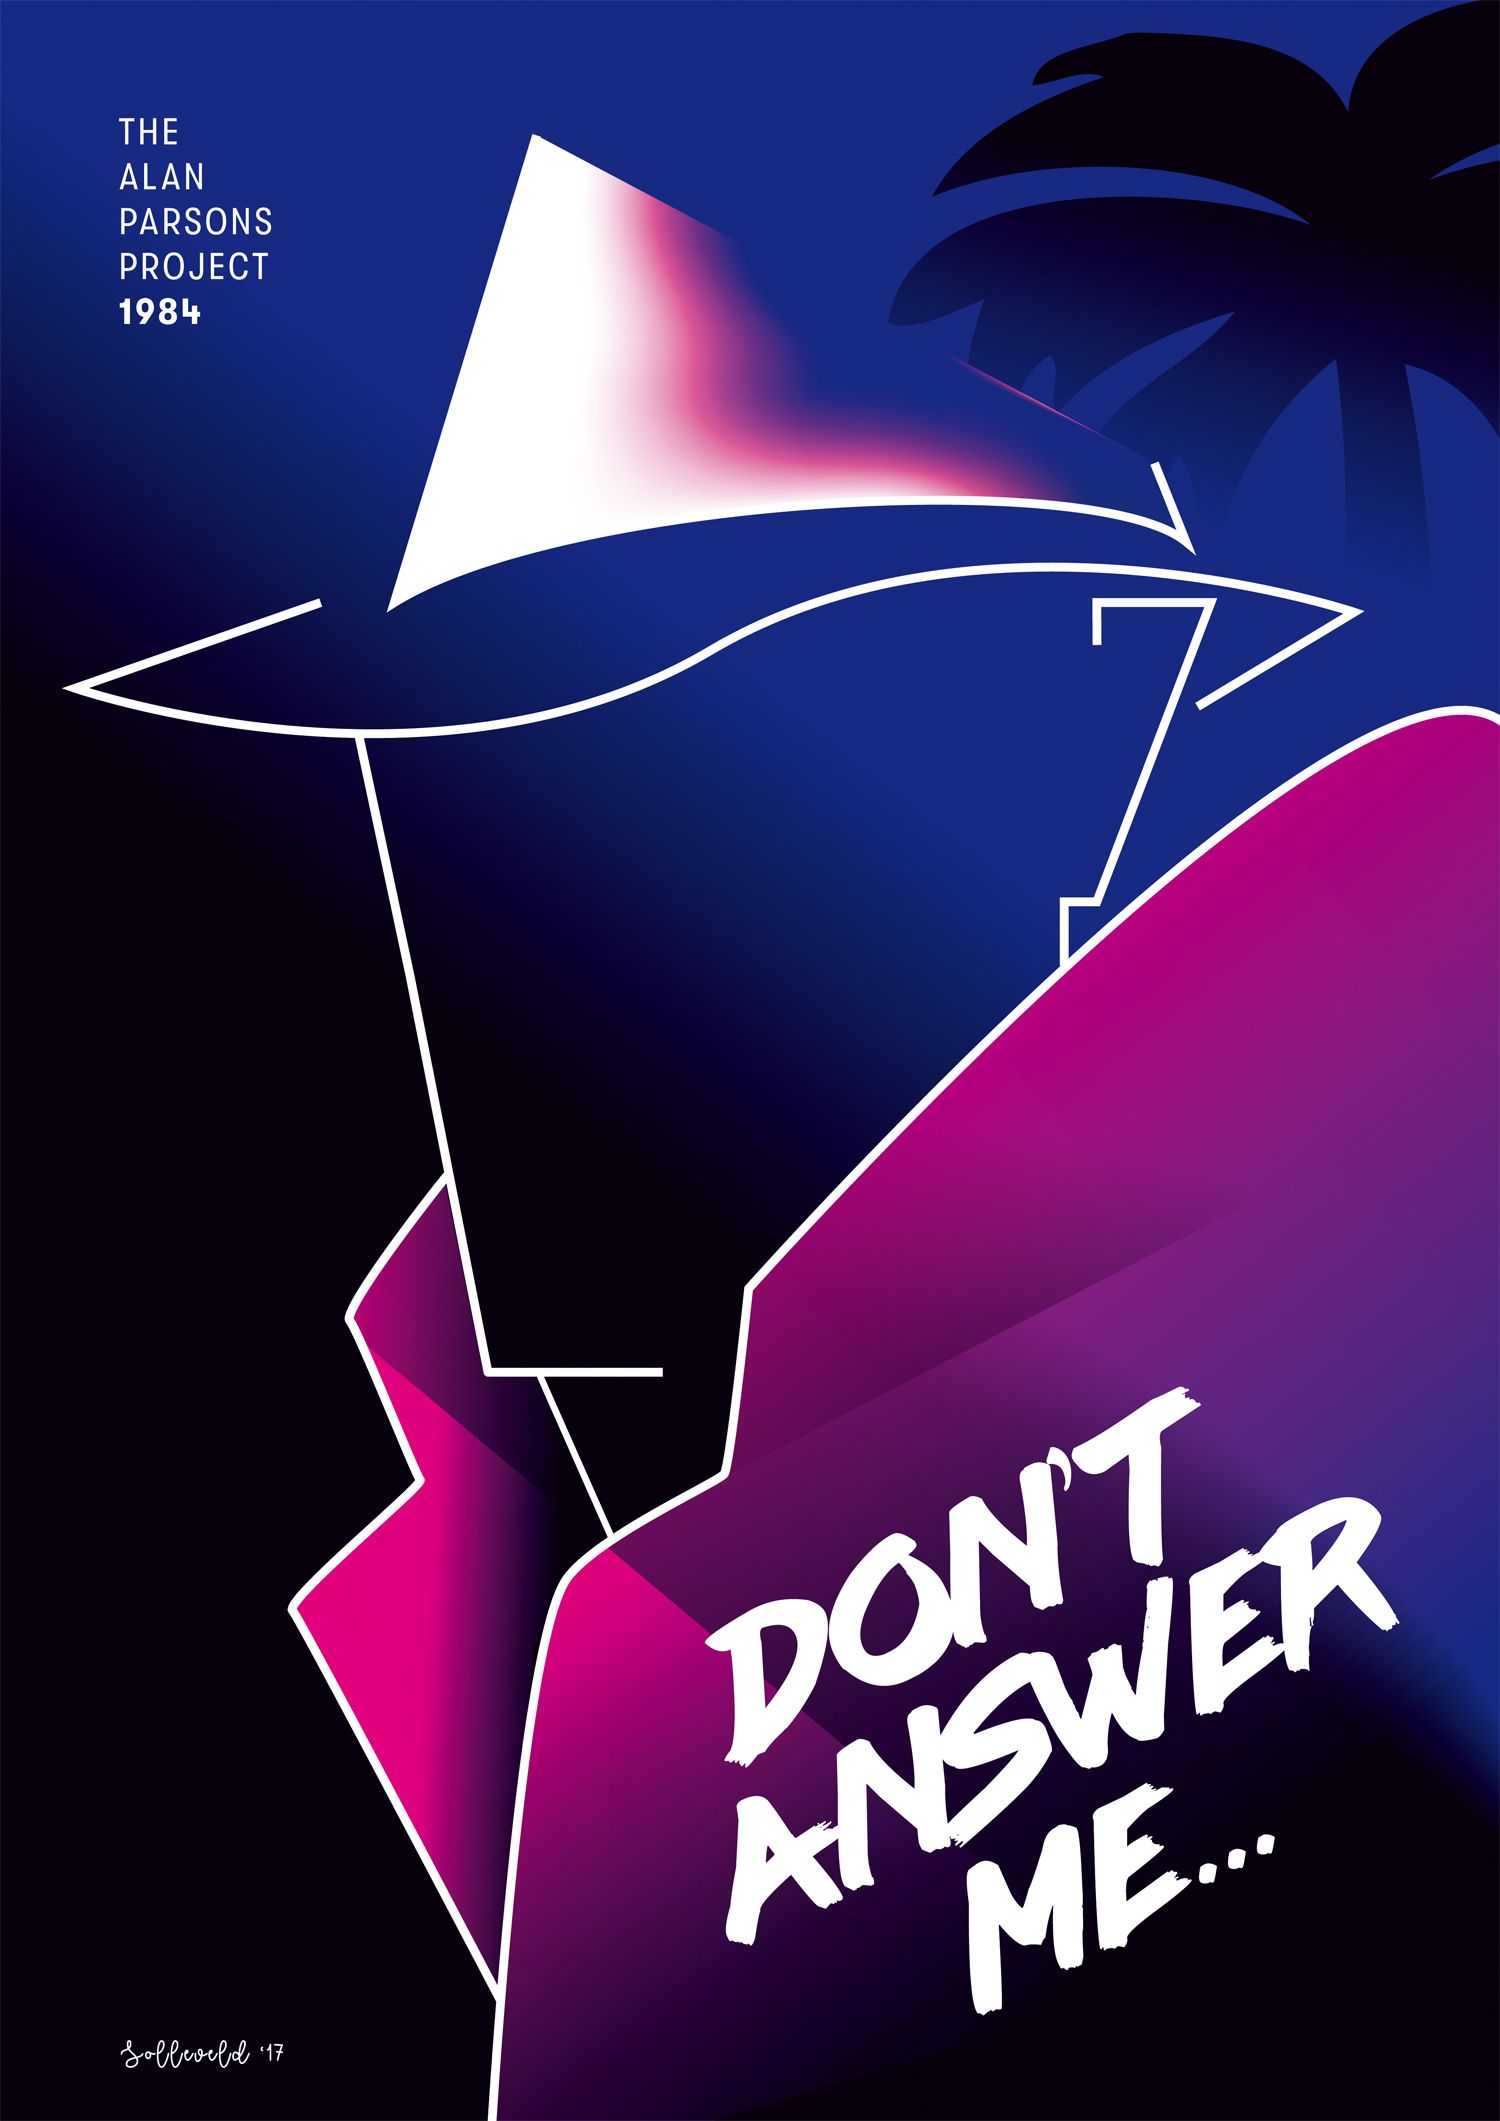 Don T Answer Me 80s Poster Design Digital Art Illustration 80s